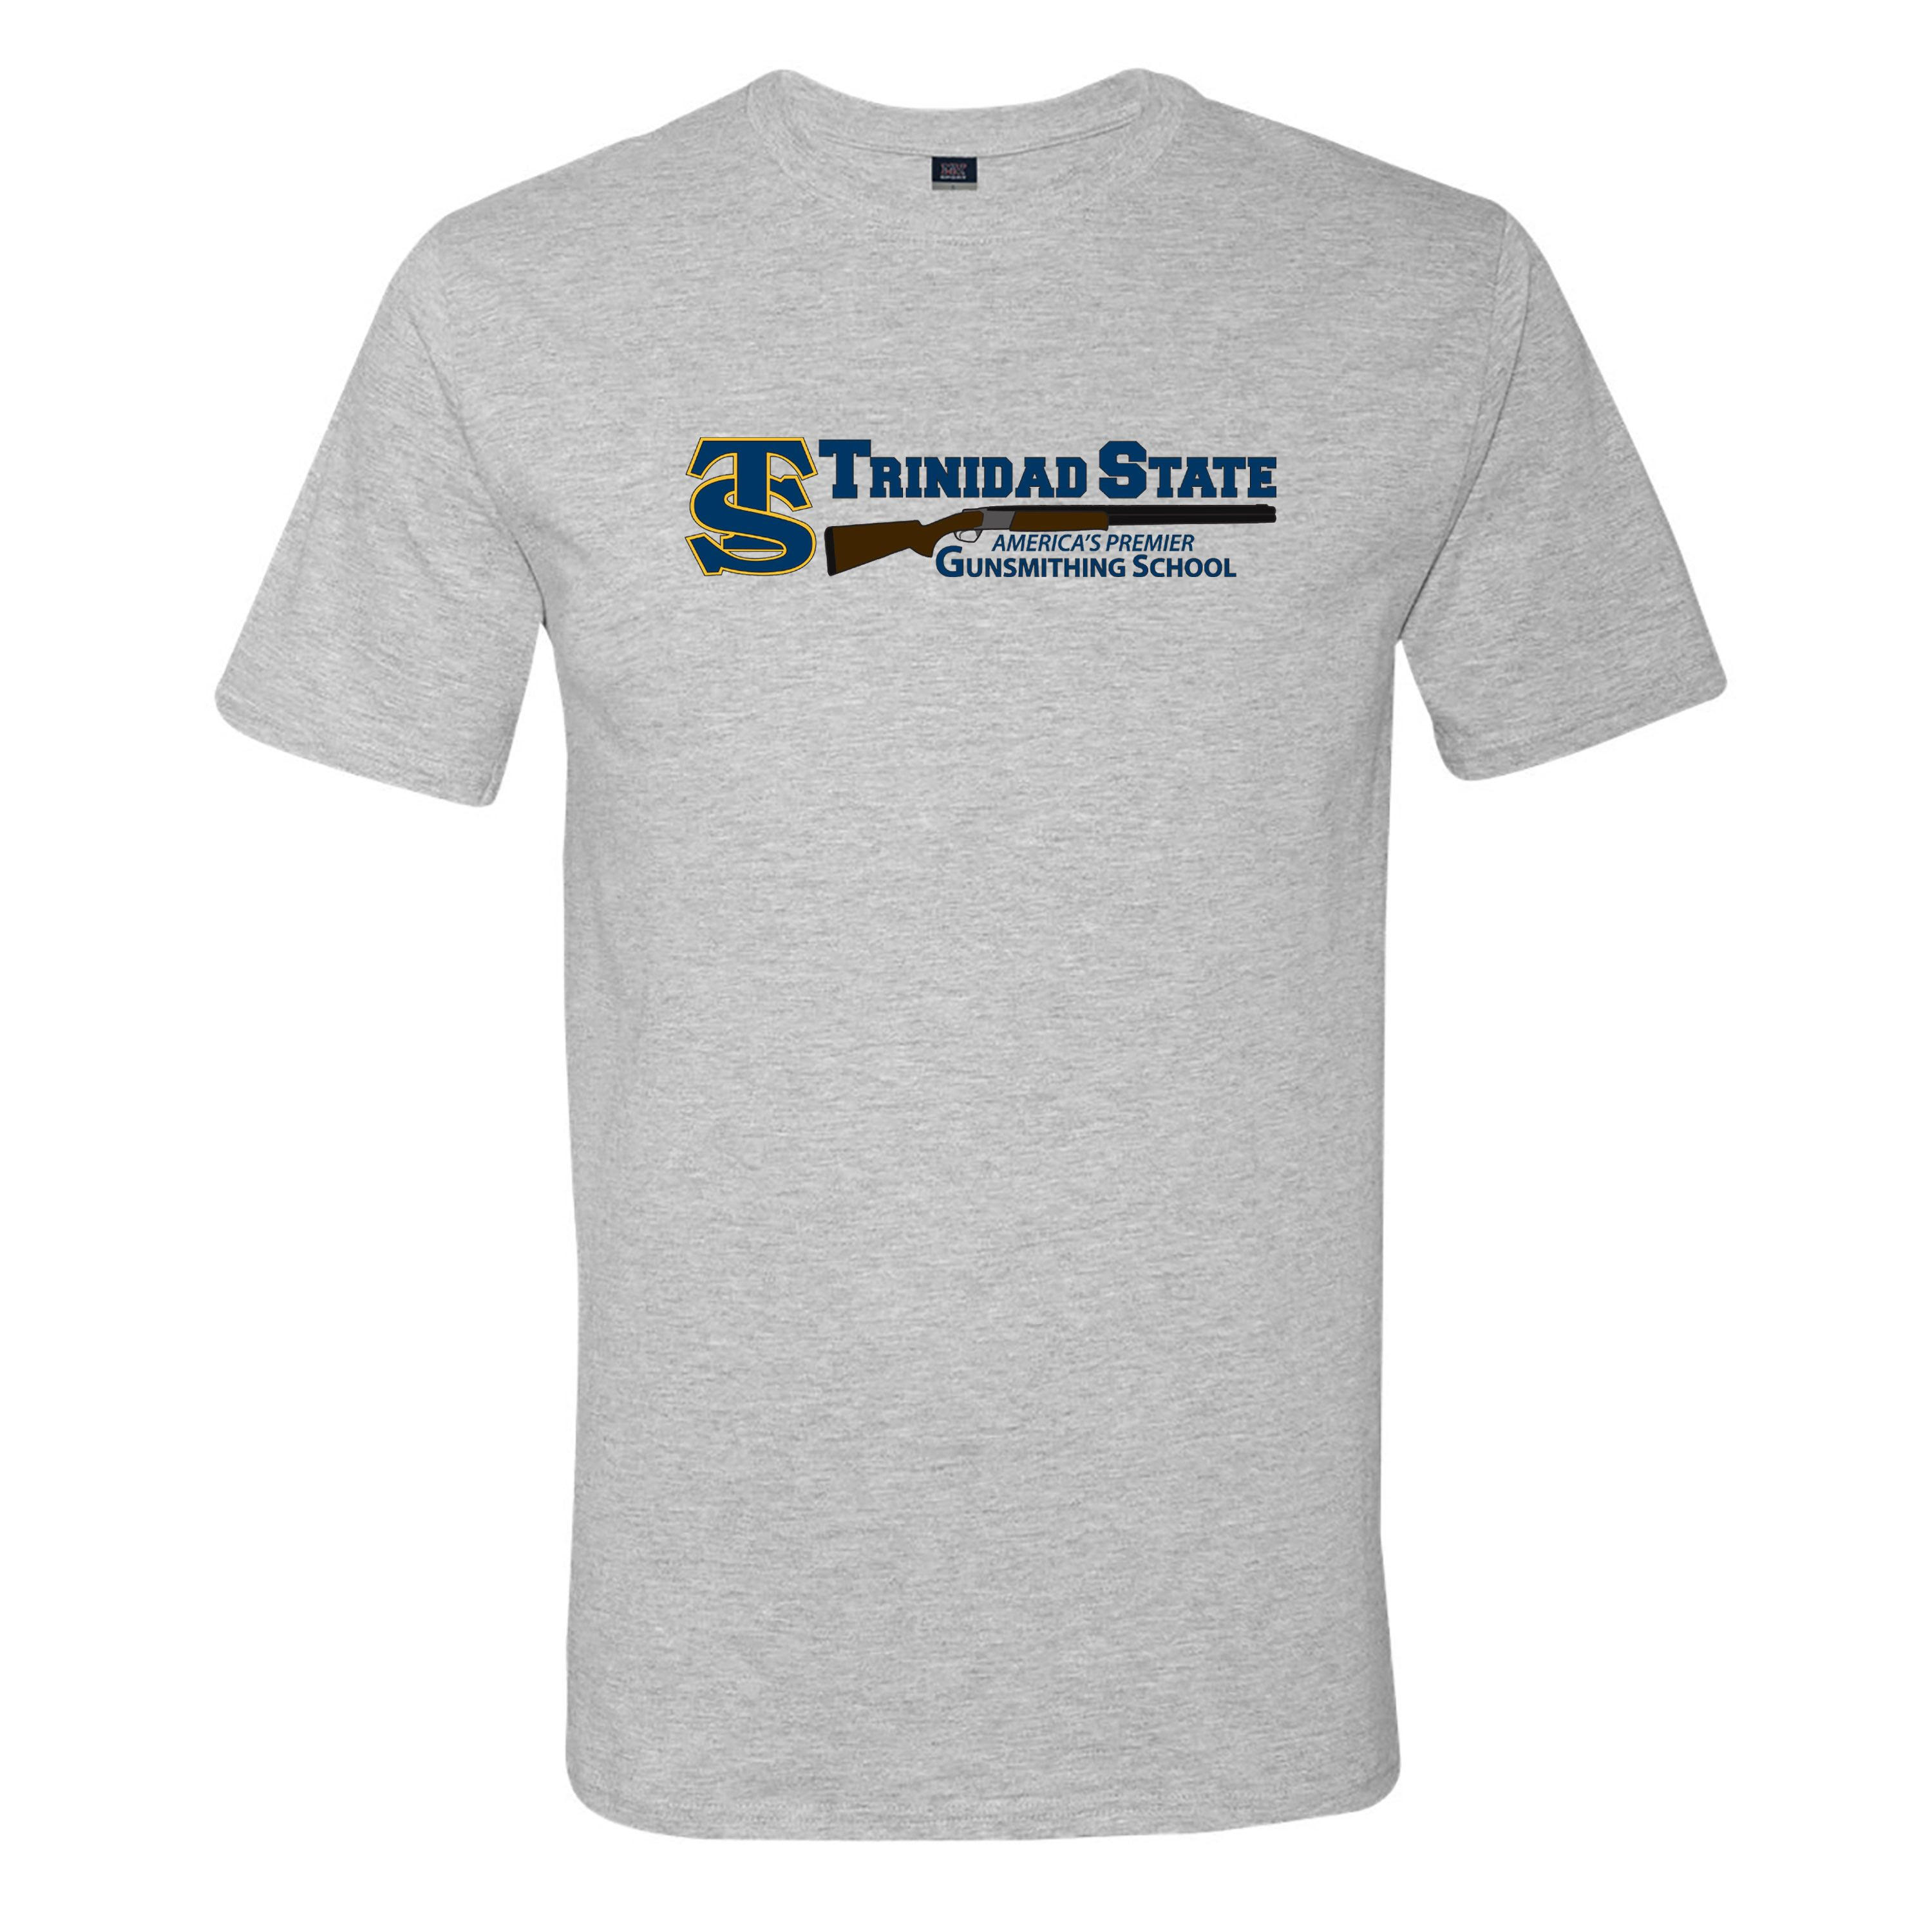 TSJC Gunsmith T-shirt